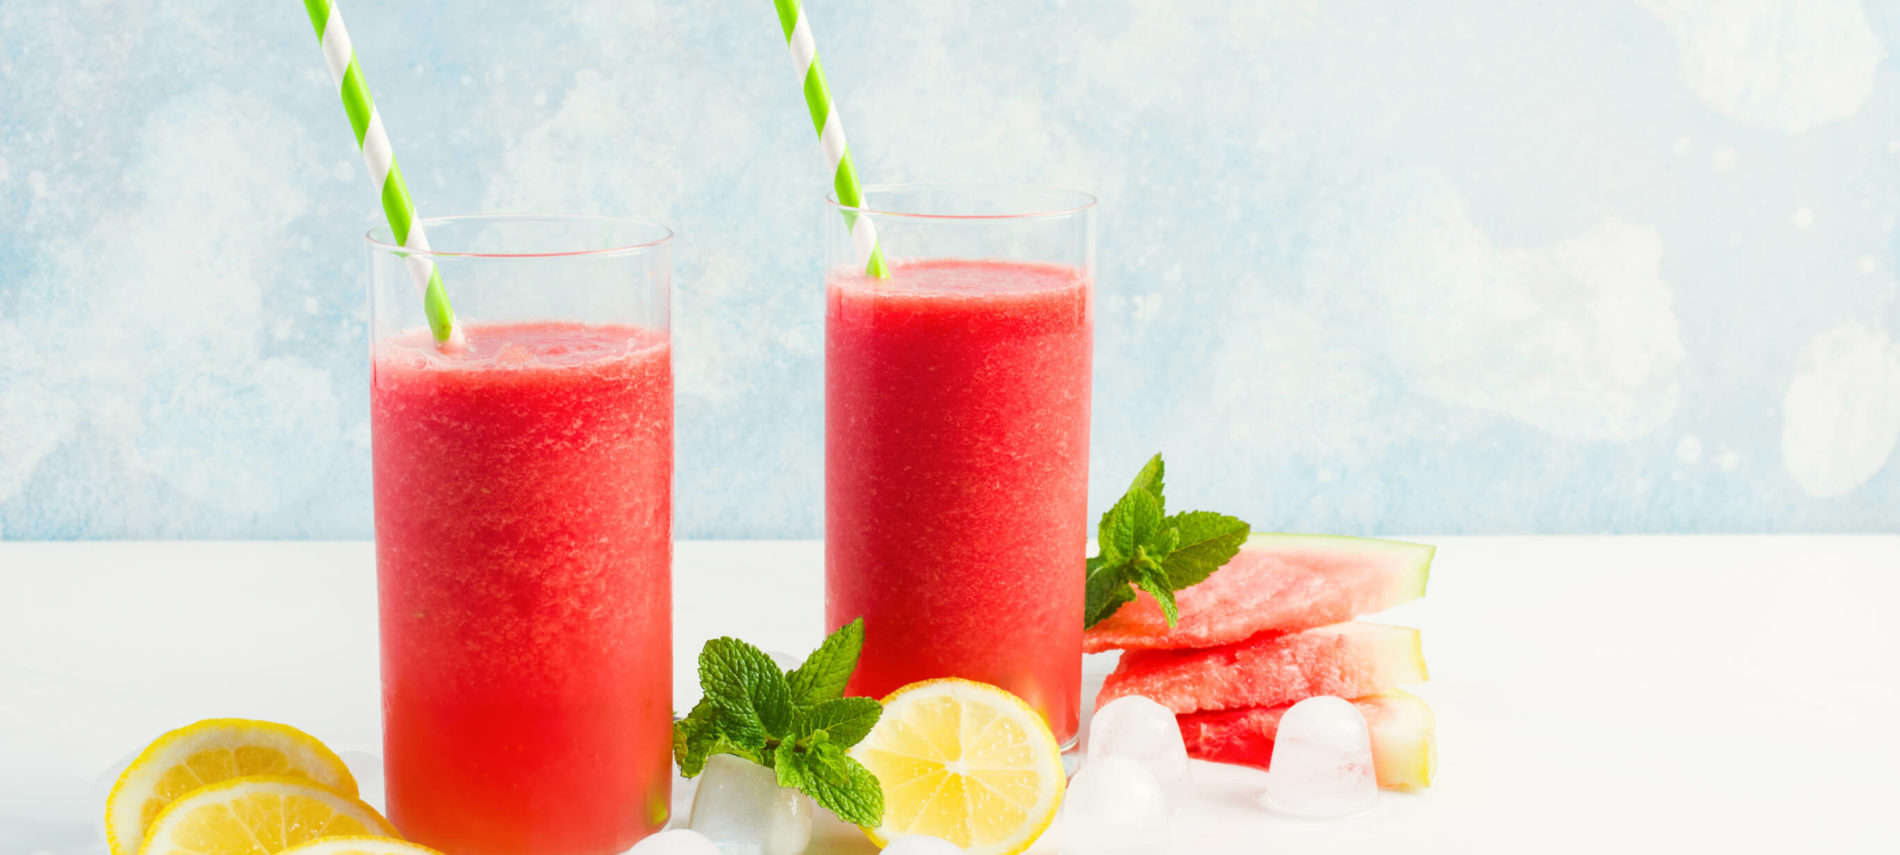 Glasses of red watermelon and lemon slush with lemons, watermelon and lemons, with green and white striped straws